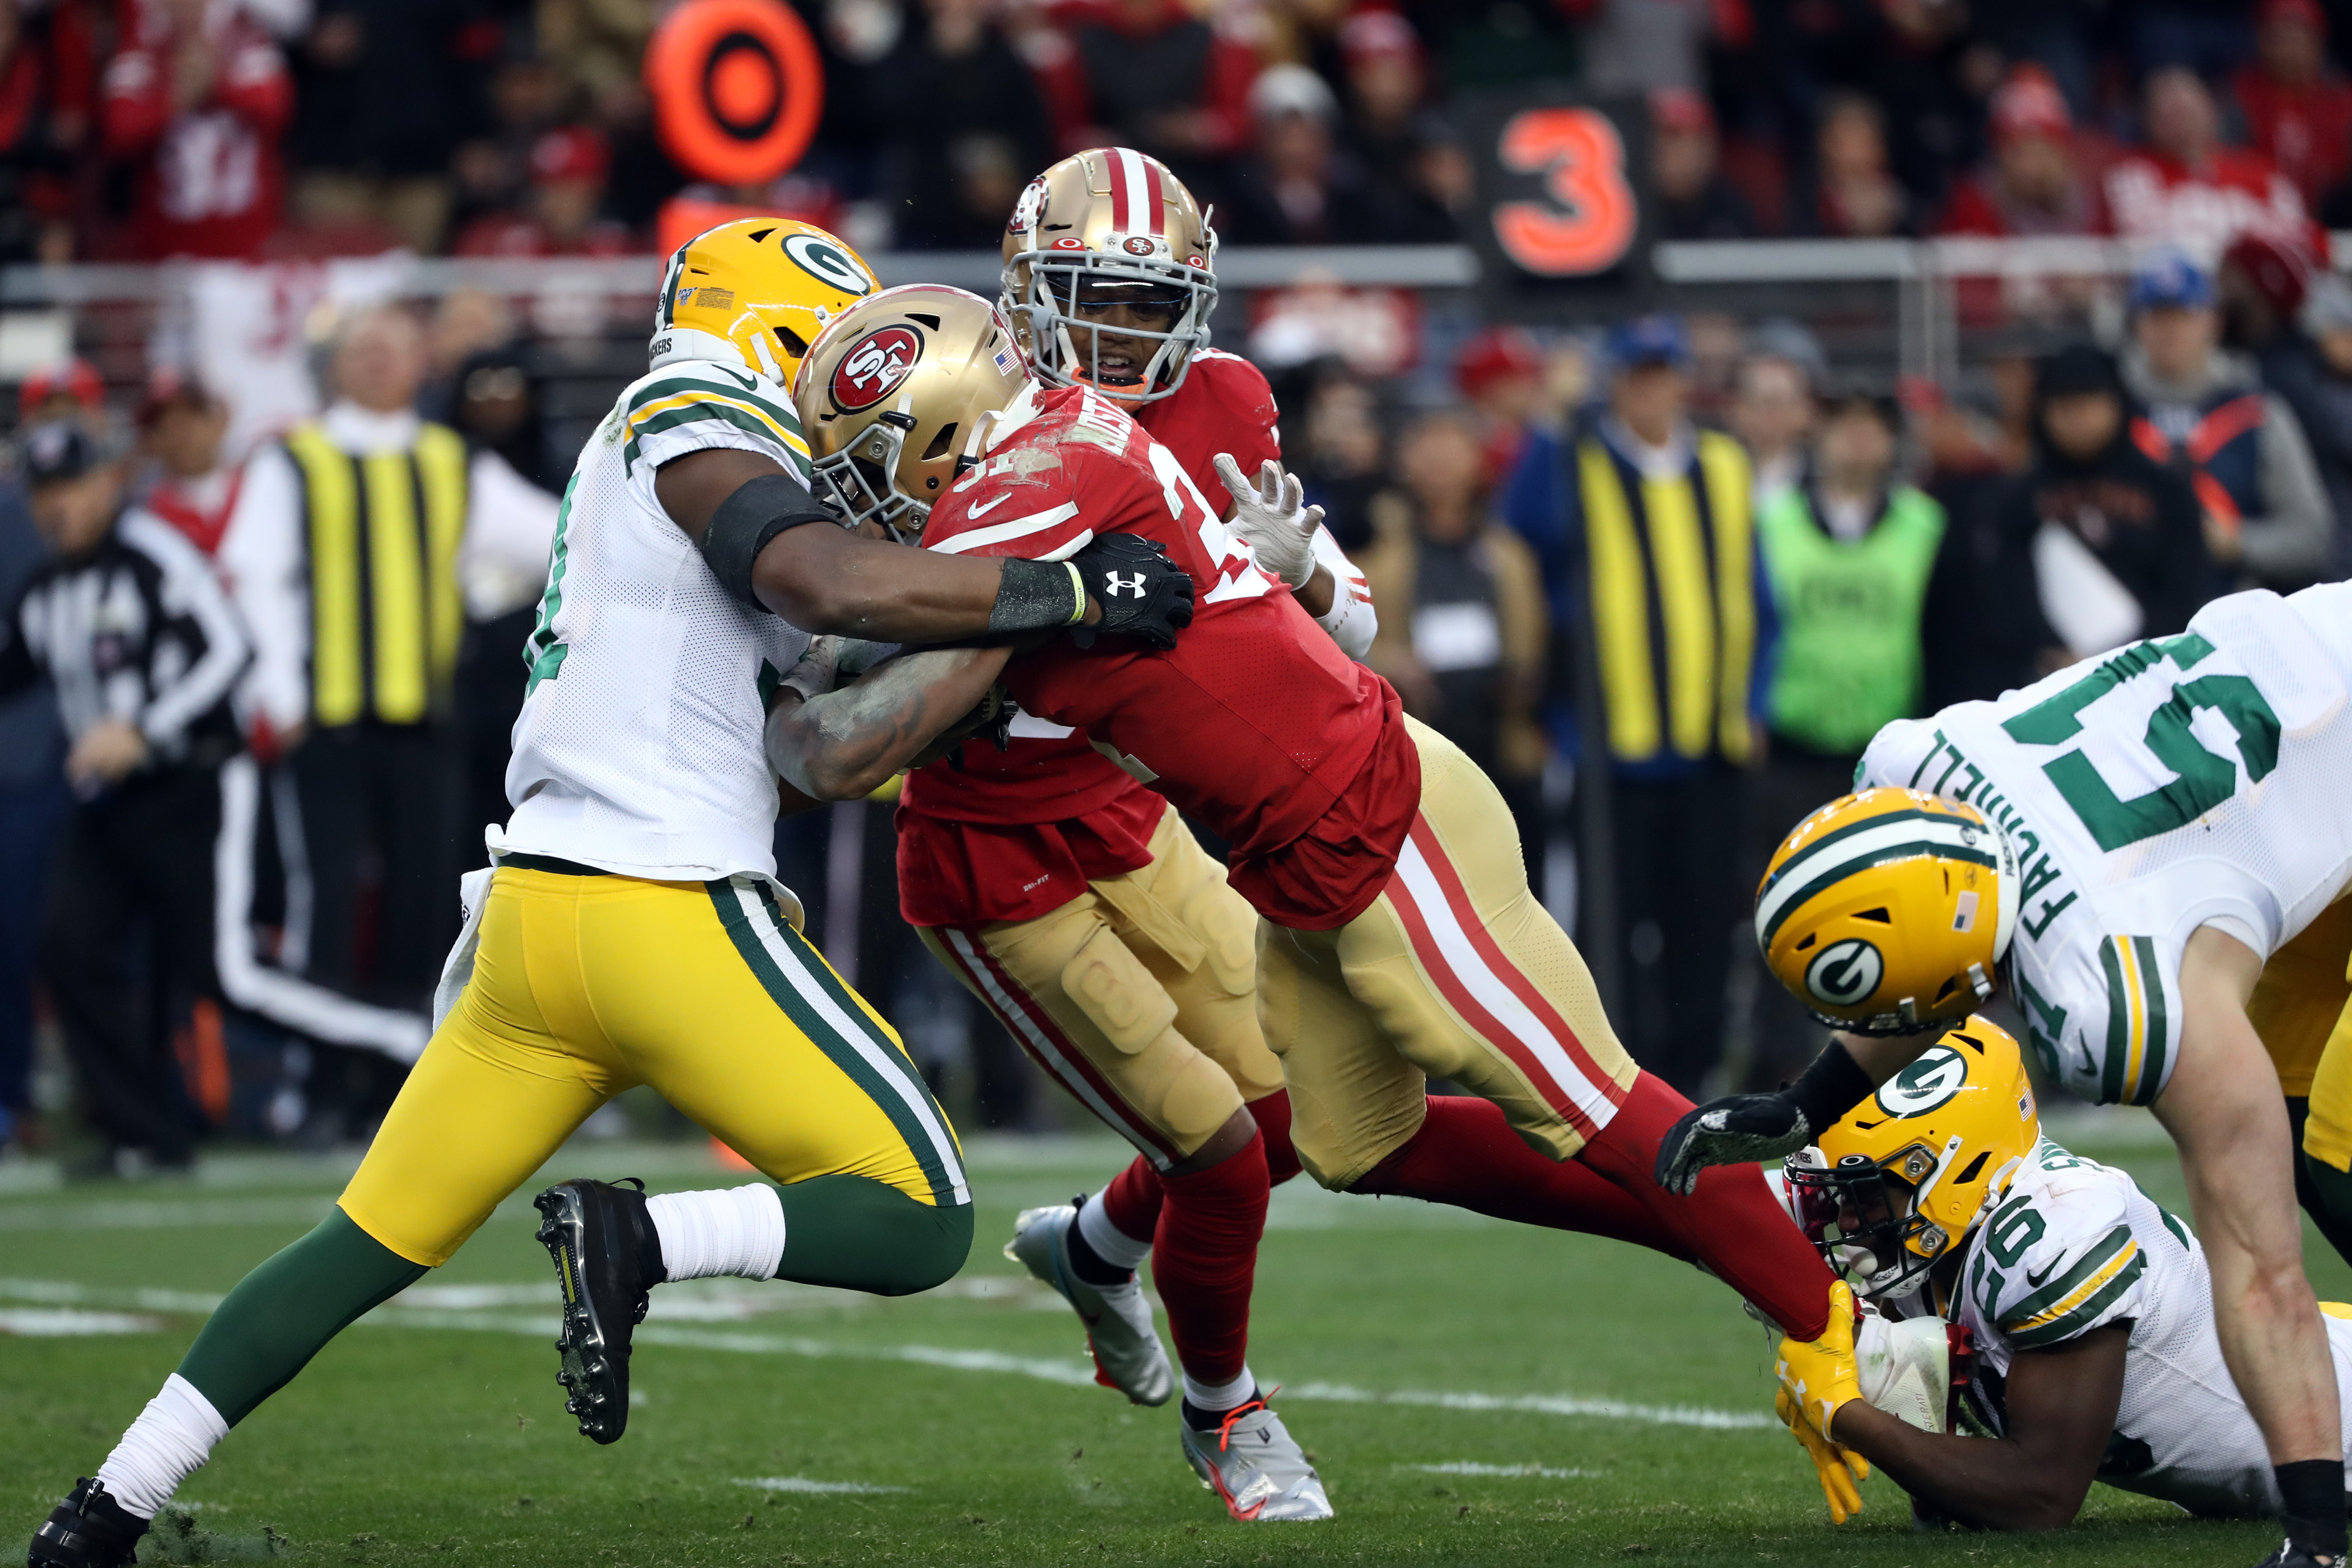 The Green Bay Packers playing the San Francisco 49ers on the football field.